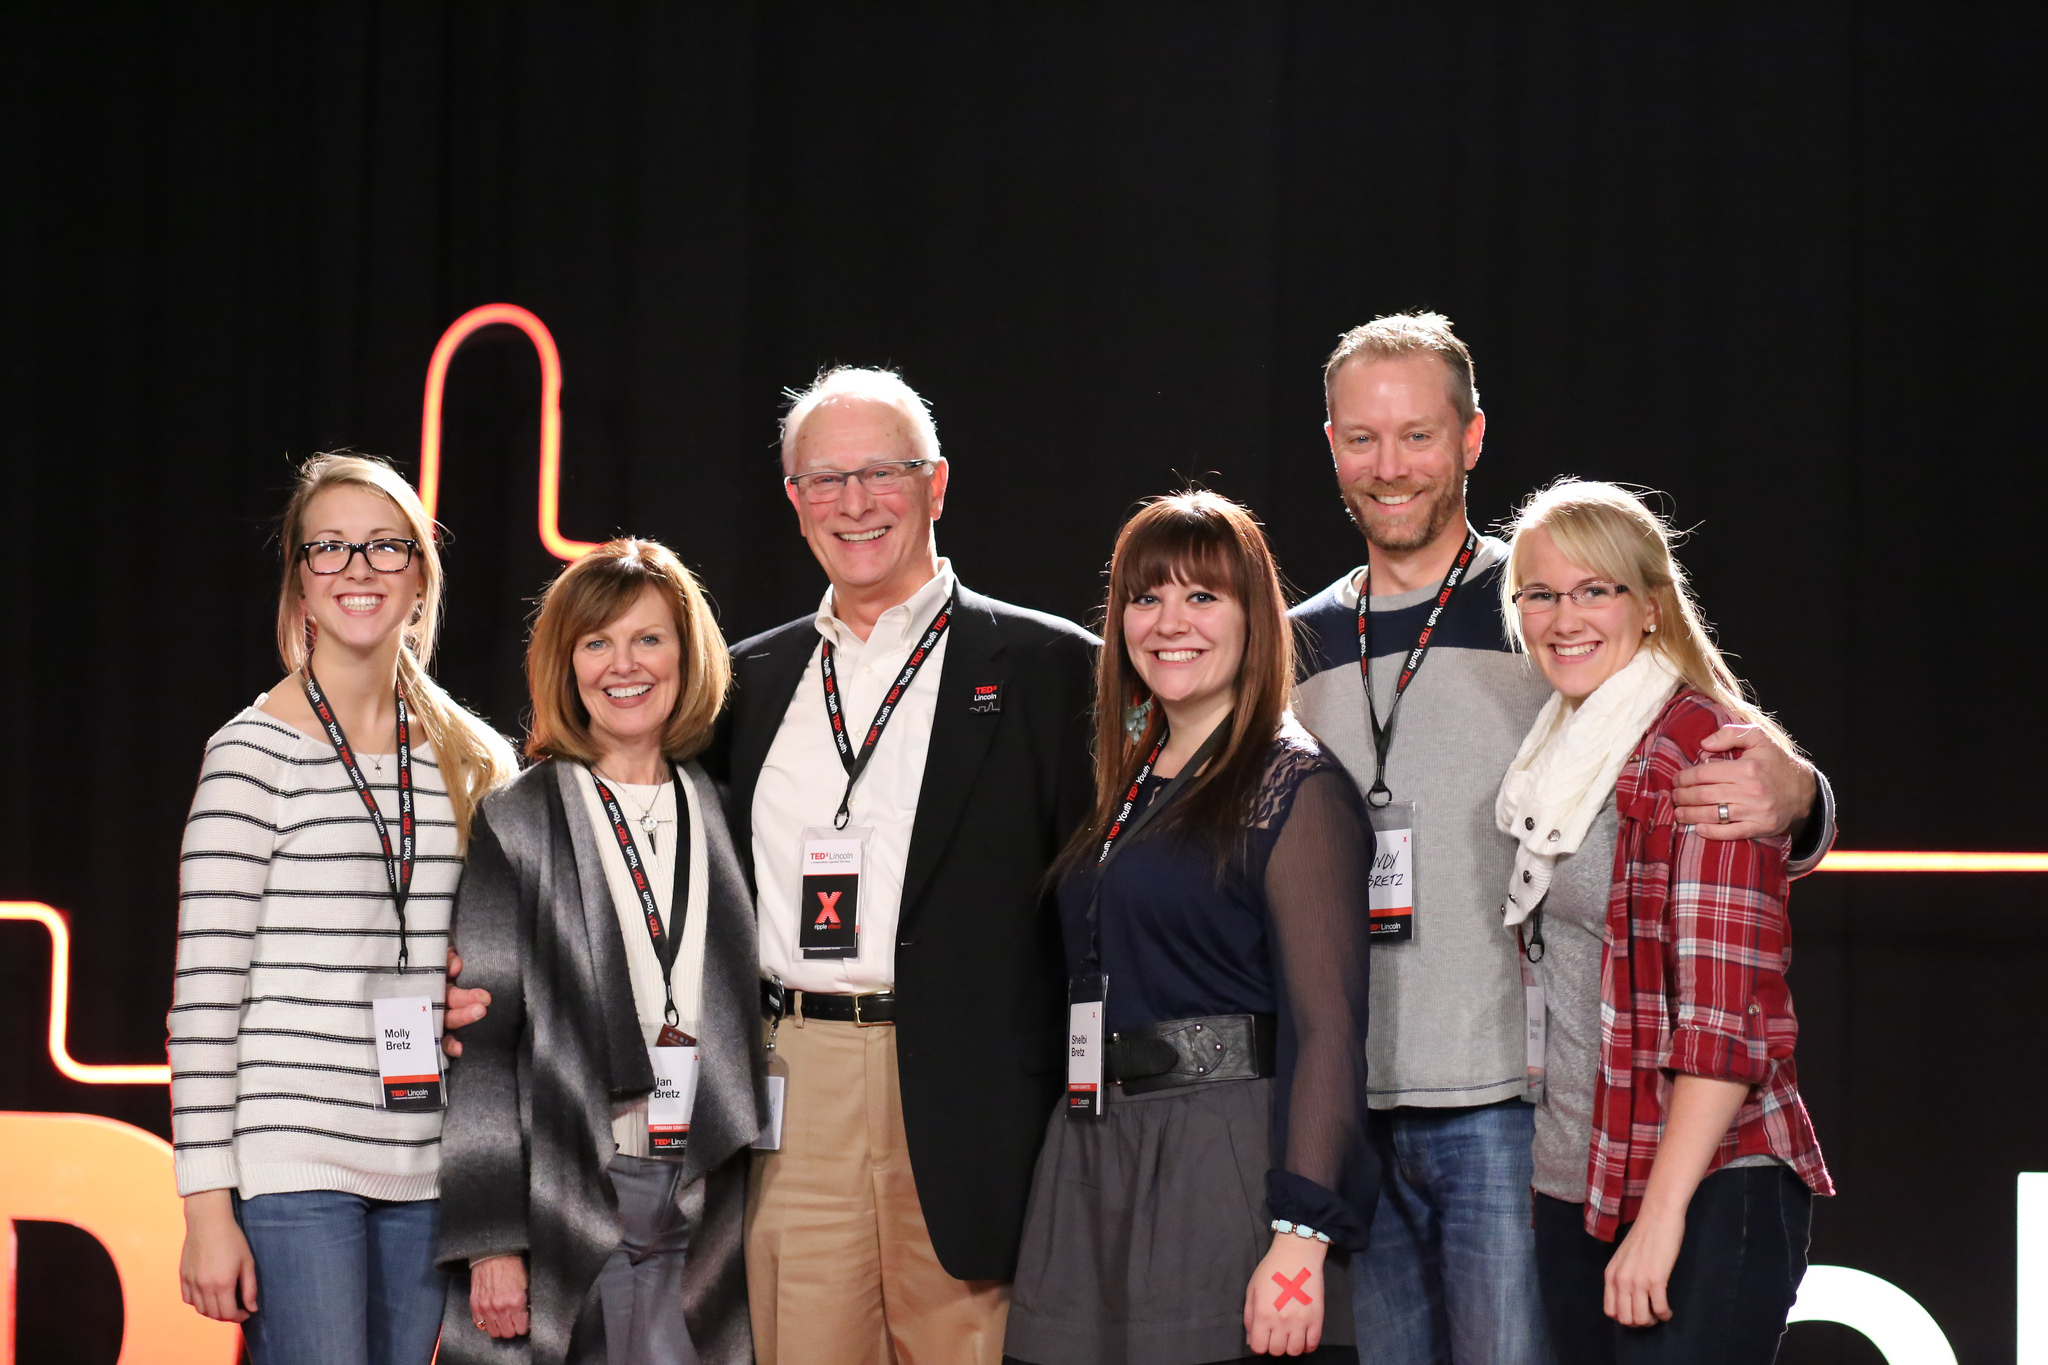 Randy Bretz, 70, didn't want to golf or fish in his retirement. Instead, he organizes TEDxLincoln in Nebraska. Photo: Courtesy of TEDxLincoln